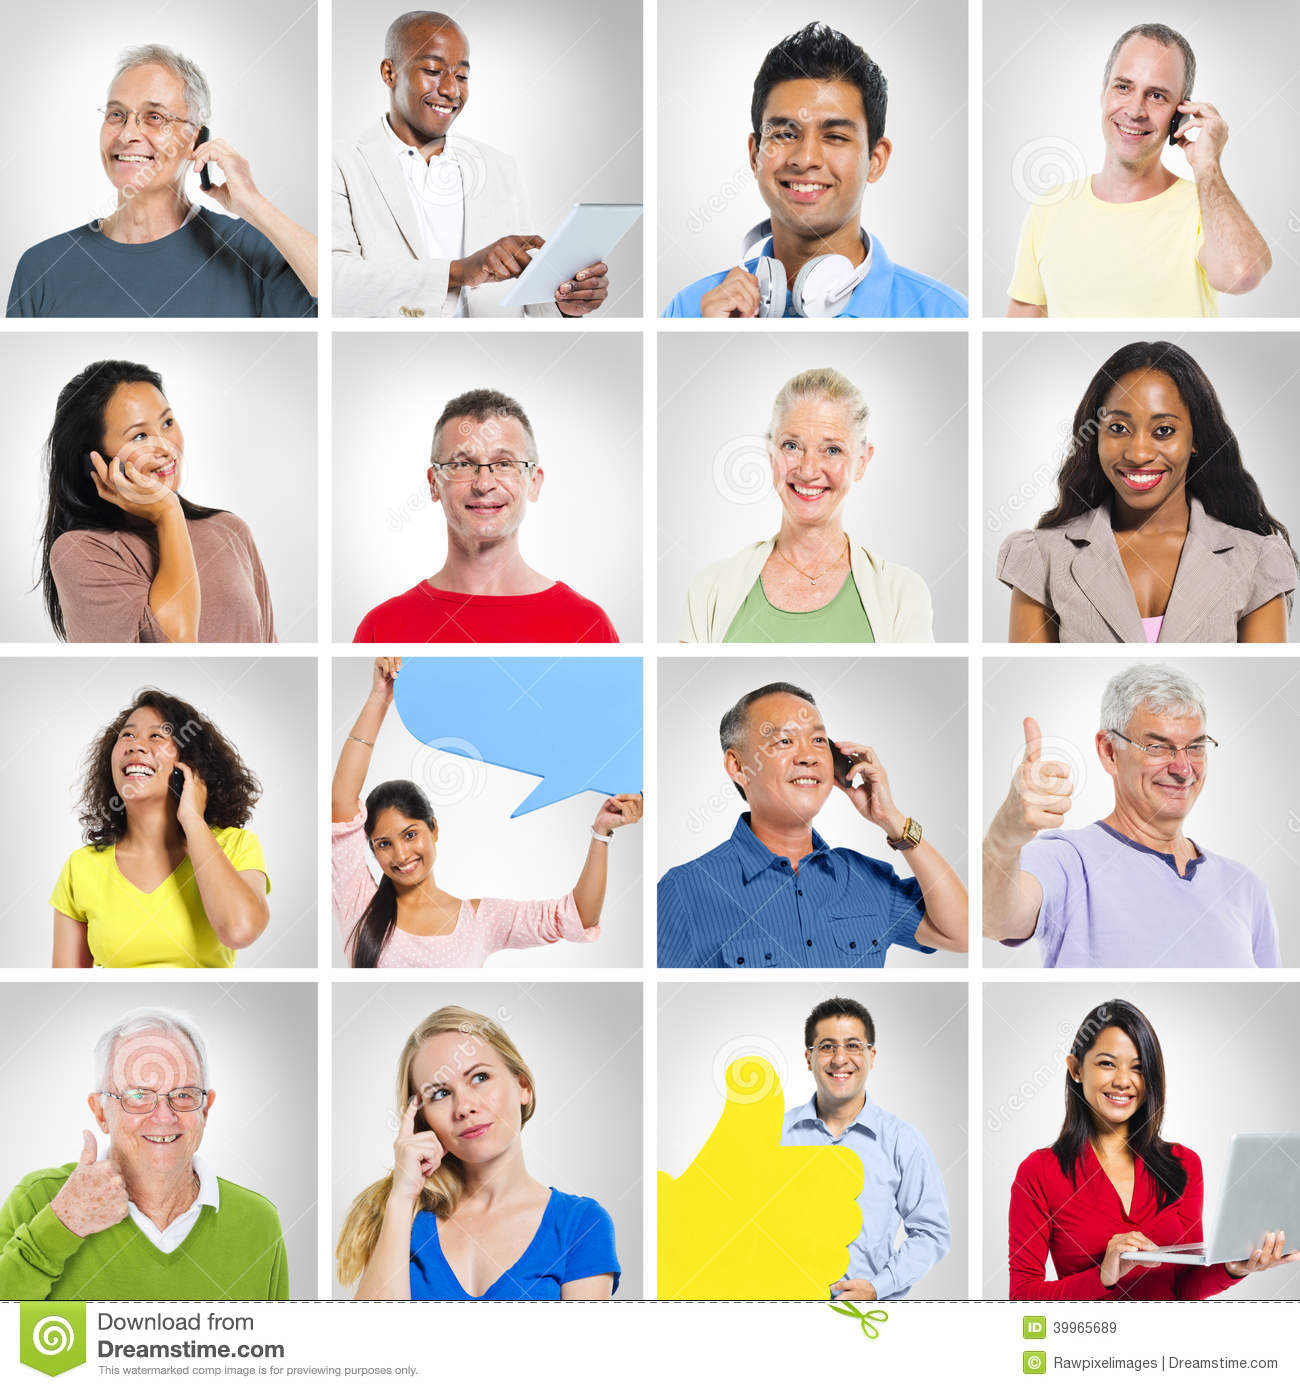 group-individuals-smiling-giving-thumbs-up-39965689[1]